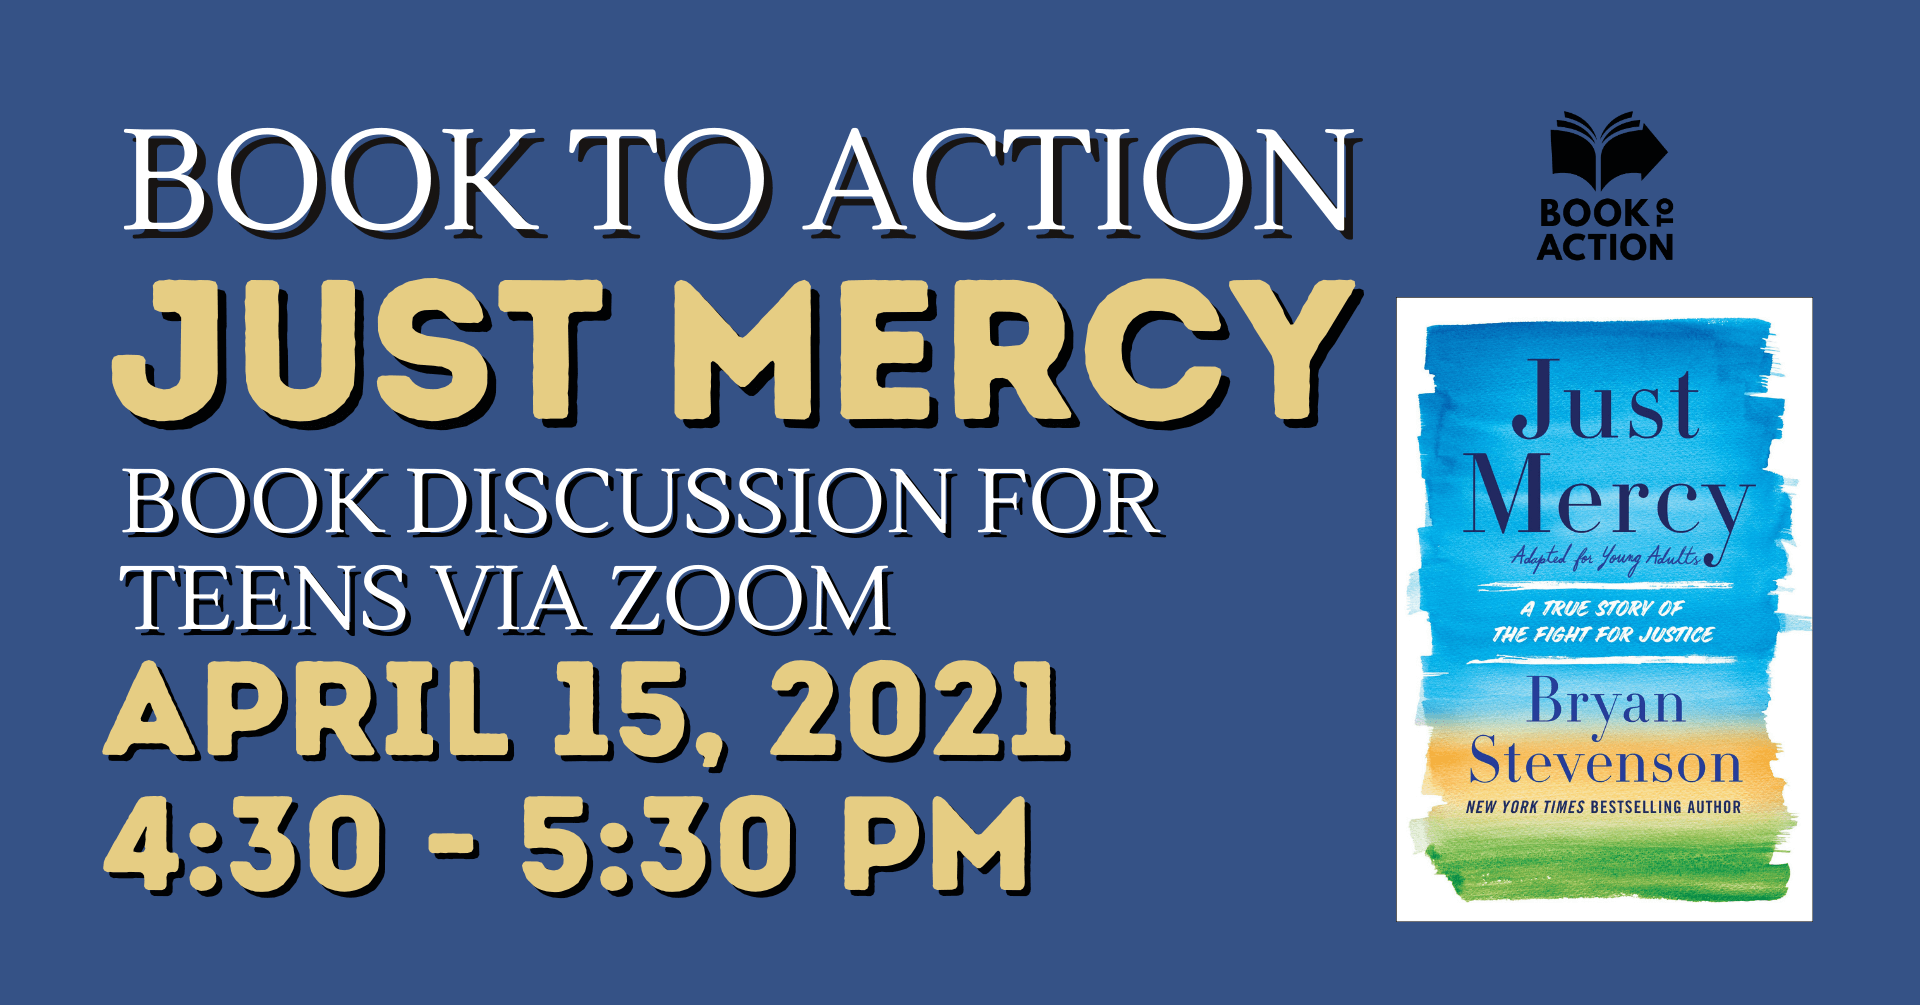 """""""Just Mercy"""" book club for teens on April 15 at 4:30 pm"""